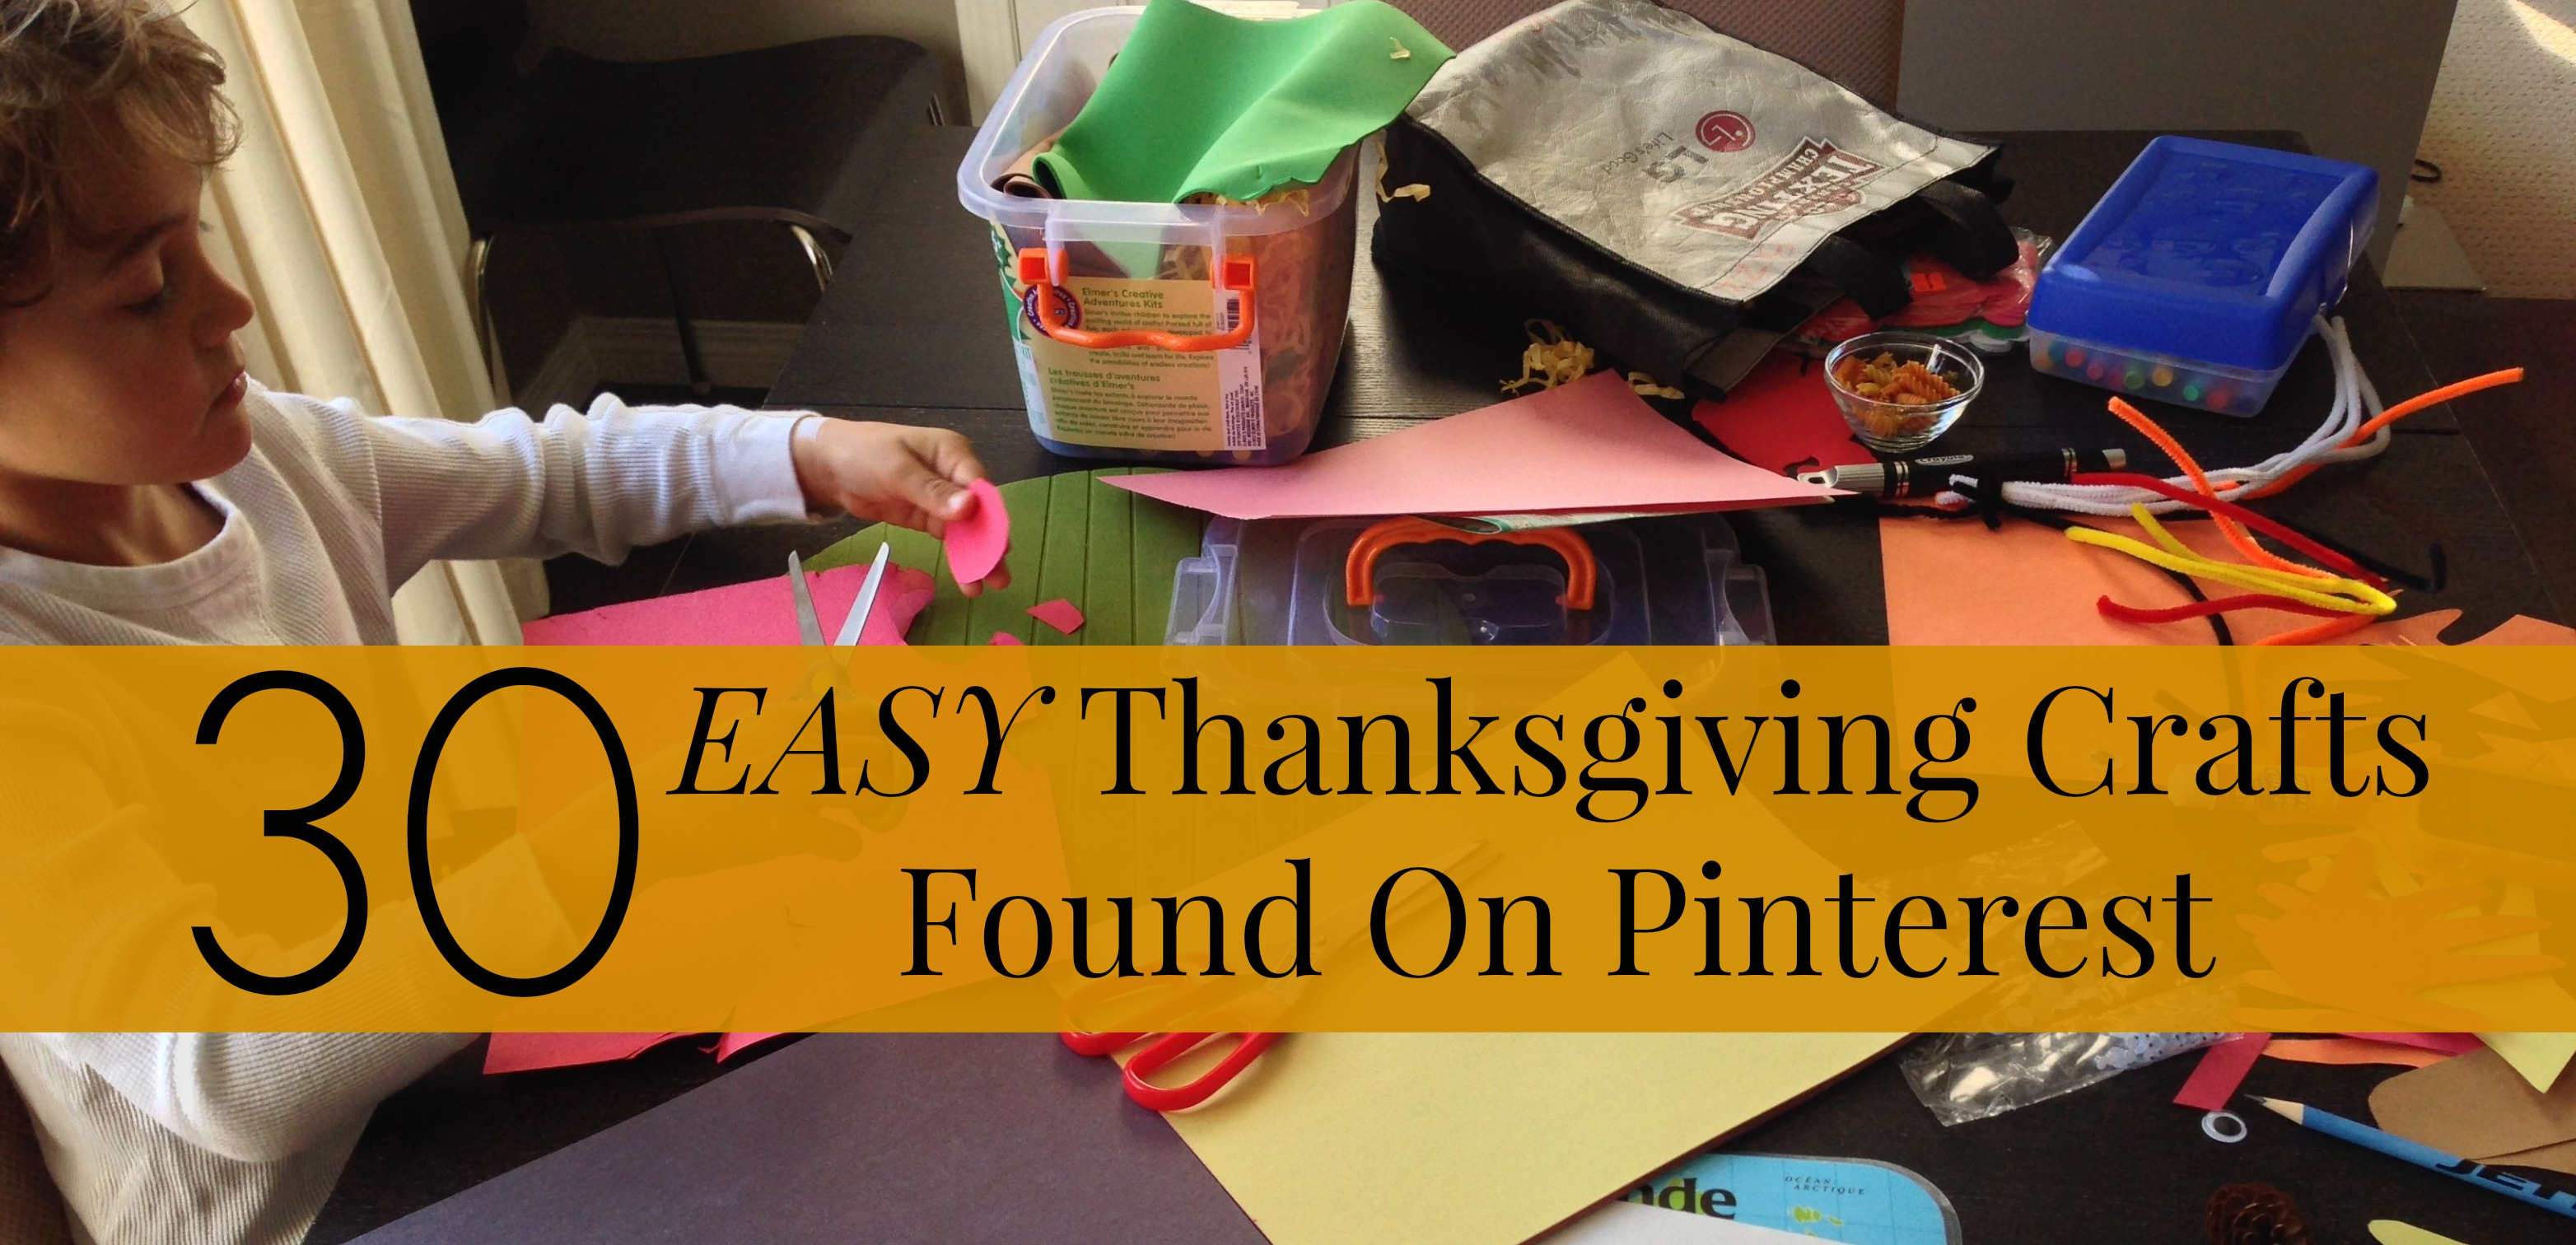 30 Thanksgiving Crafts Found on Pinterest